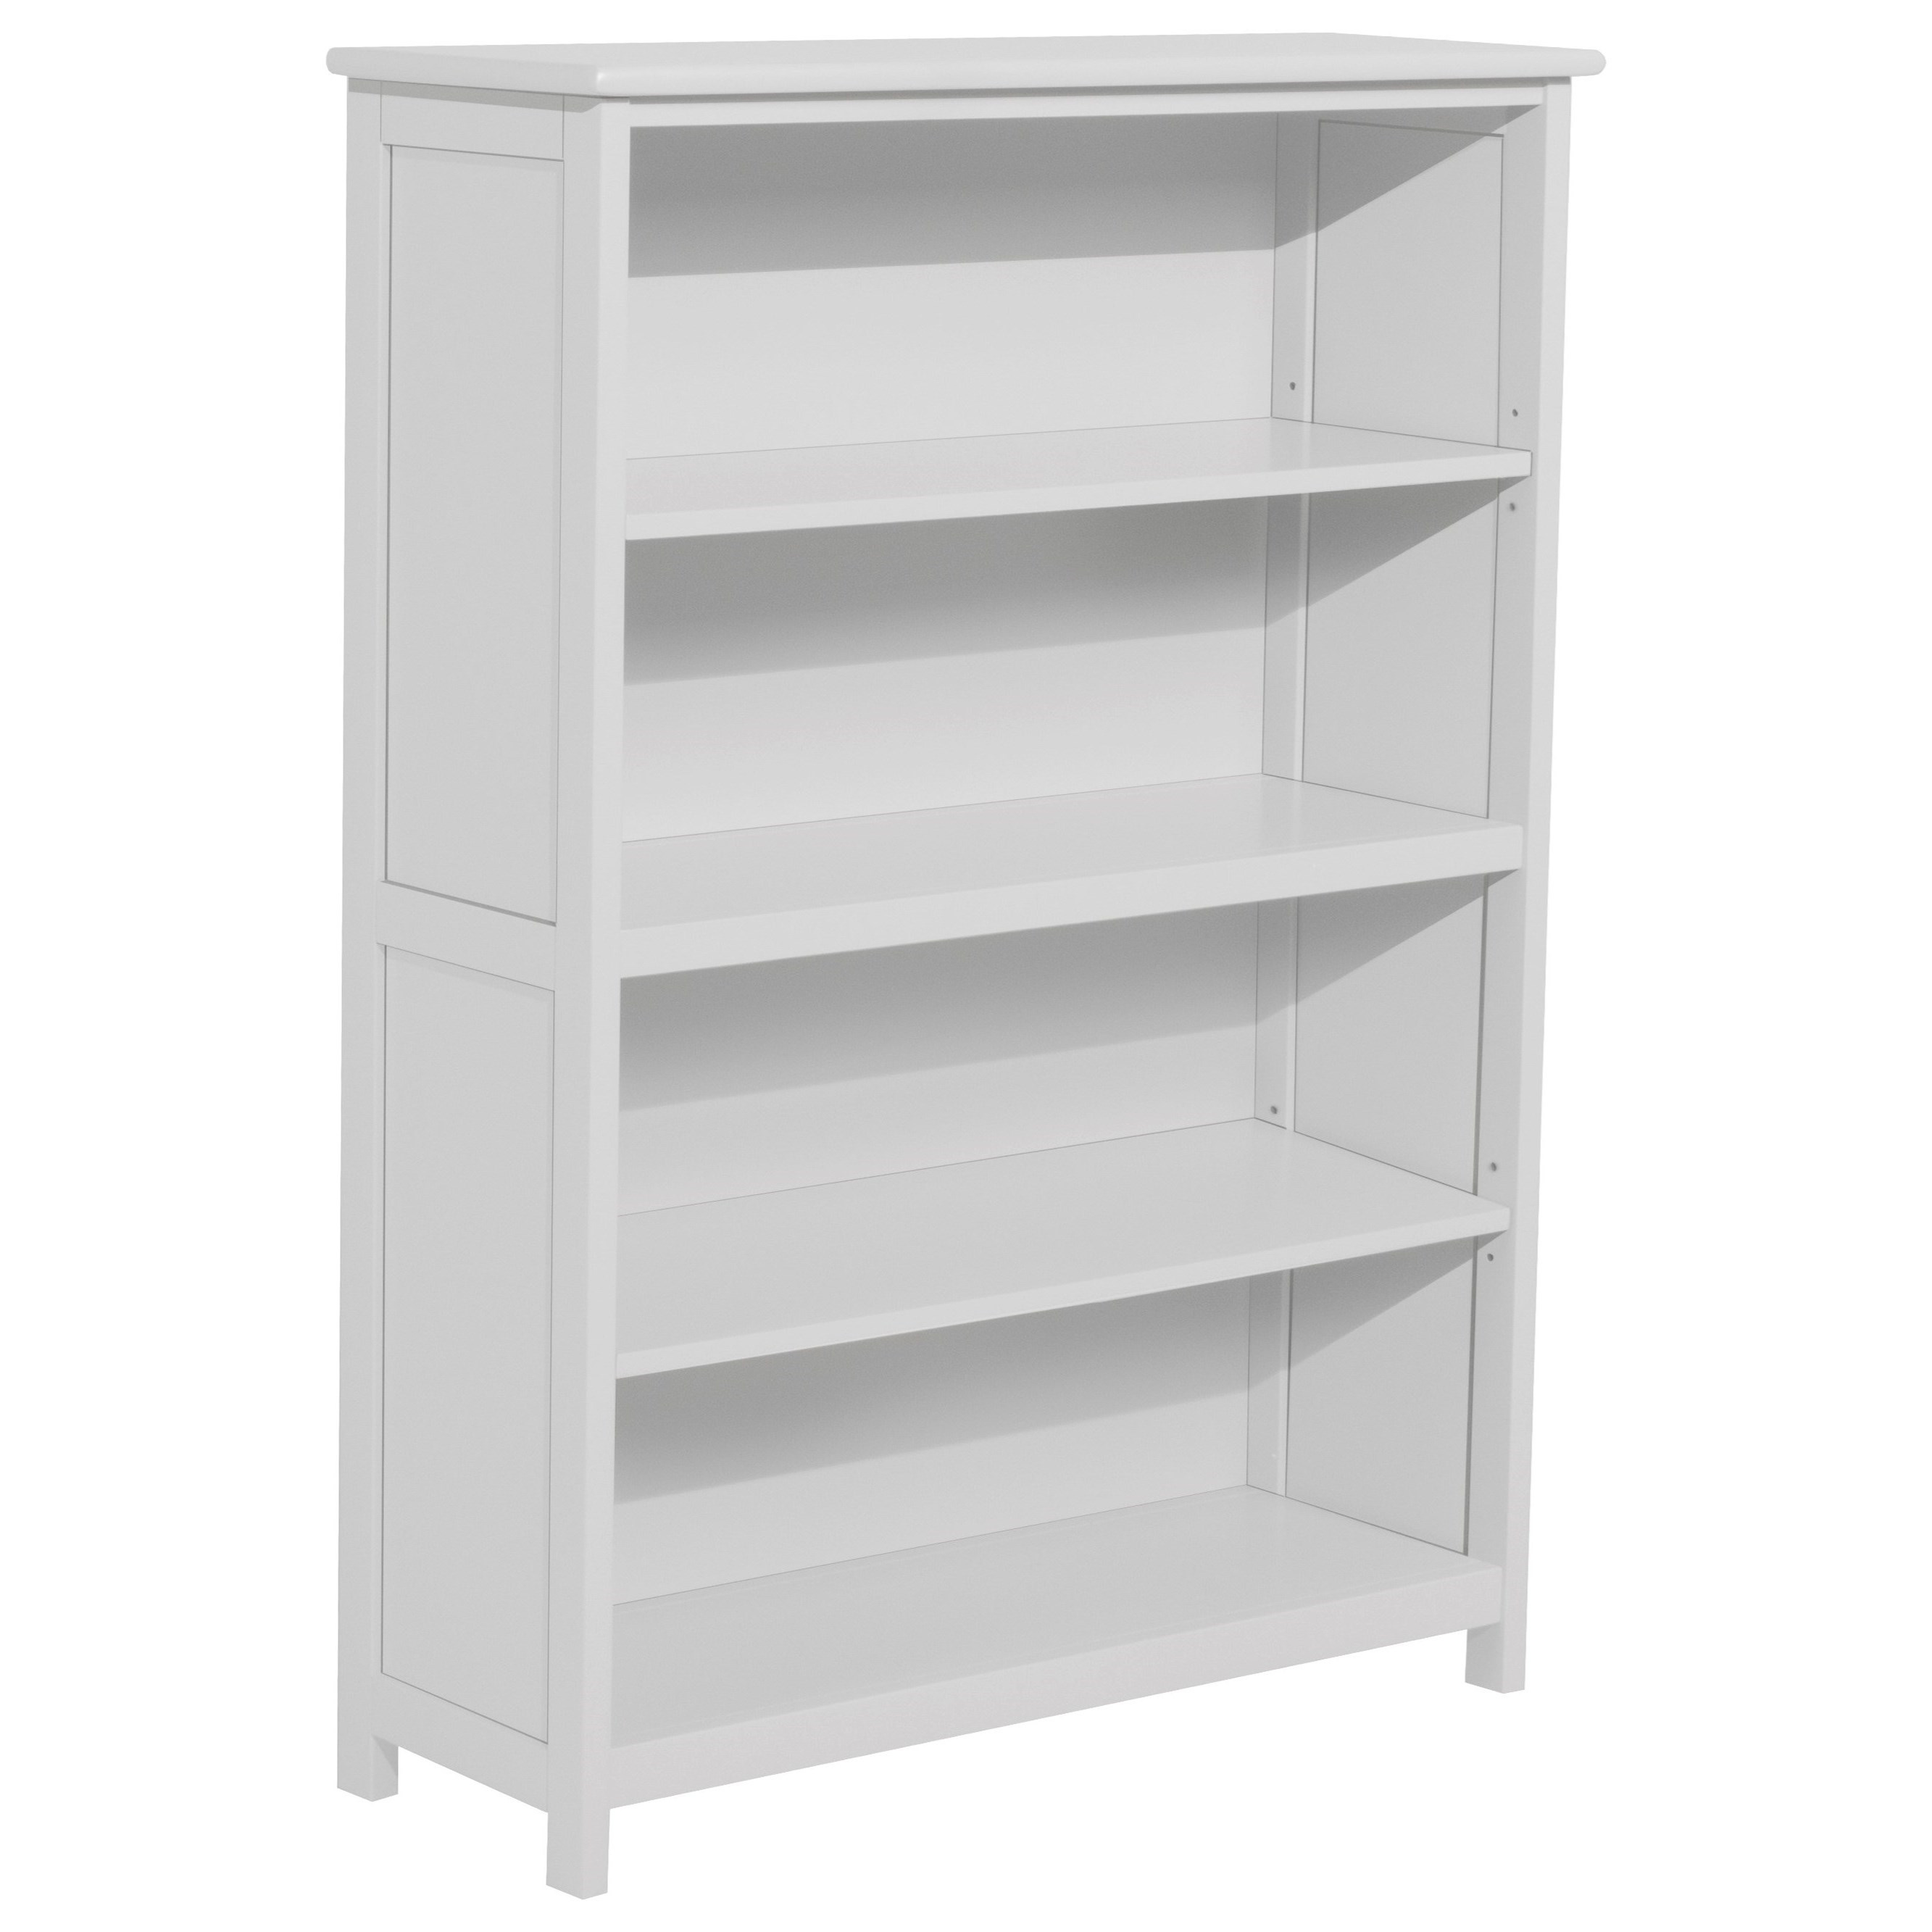 Schoolhouse 4.0 Tall Vertical Bookcase by NE Kids at Darvin Furniture